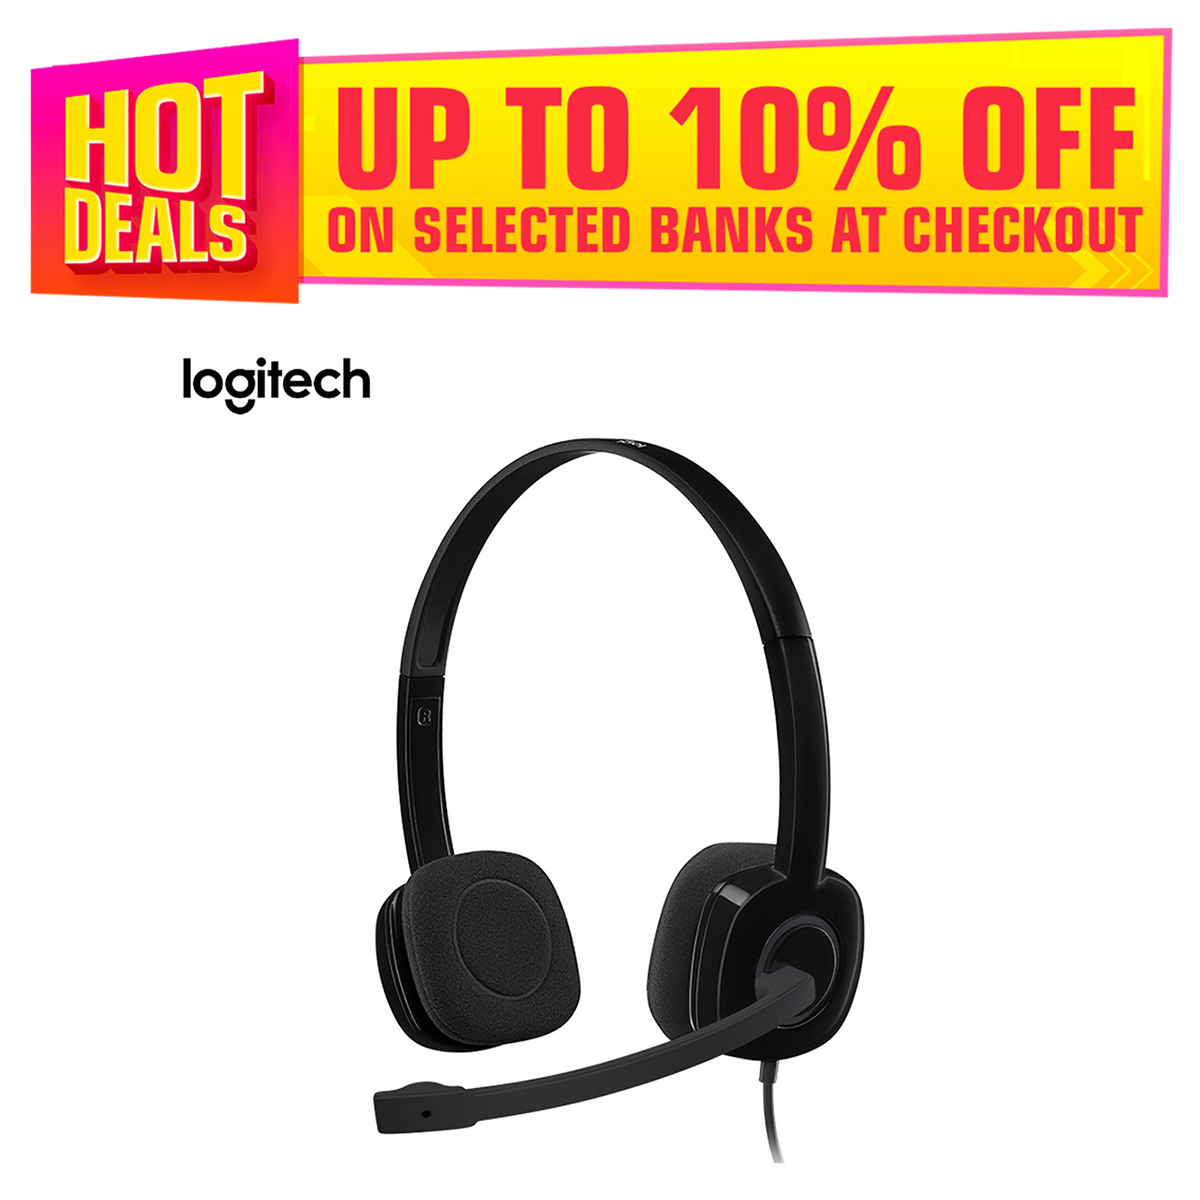 Logitech H151 Stereo Headset with Noise-Cancelling Microphone Single 3.5mm Plug